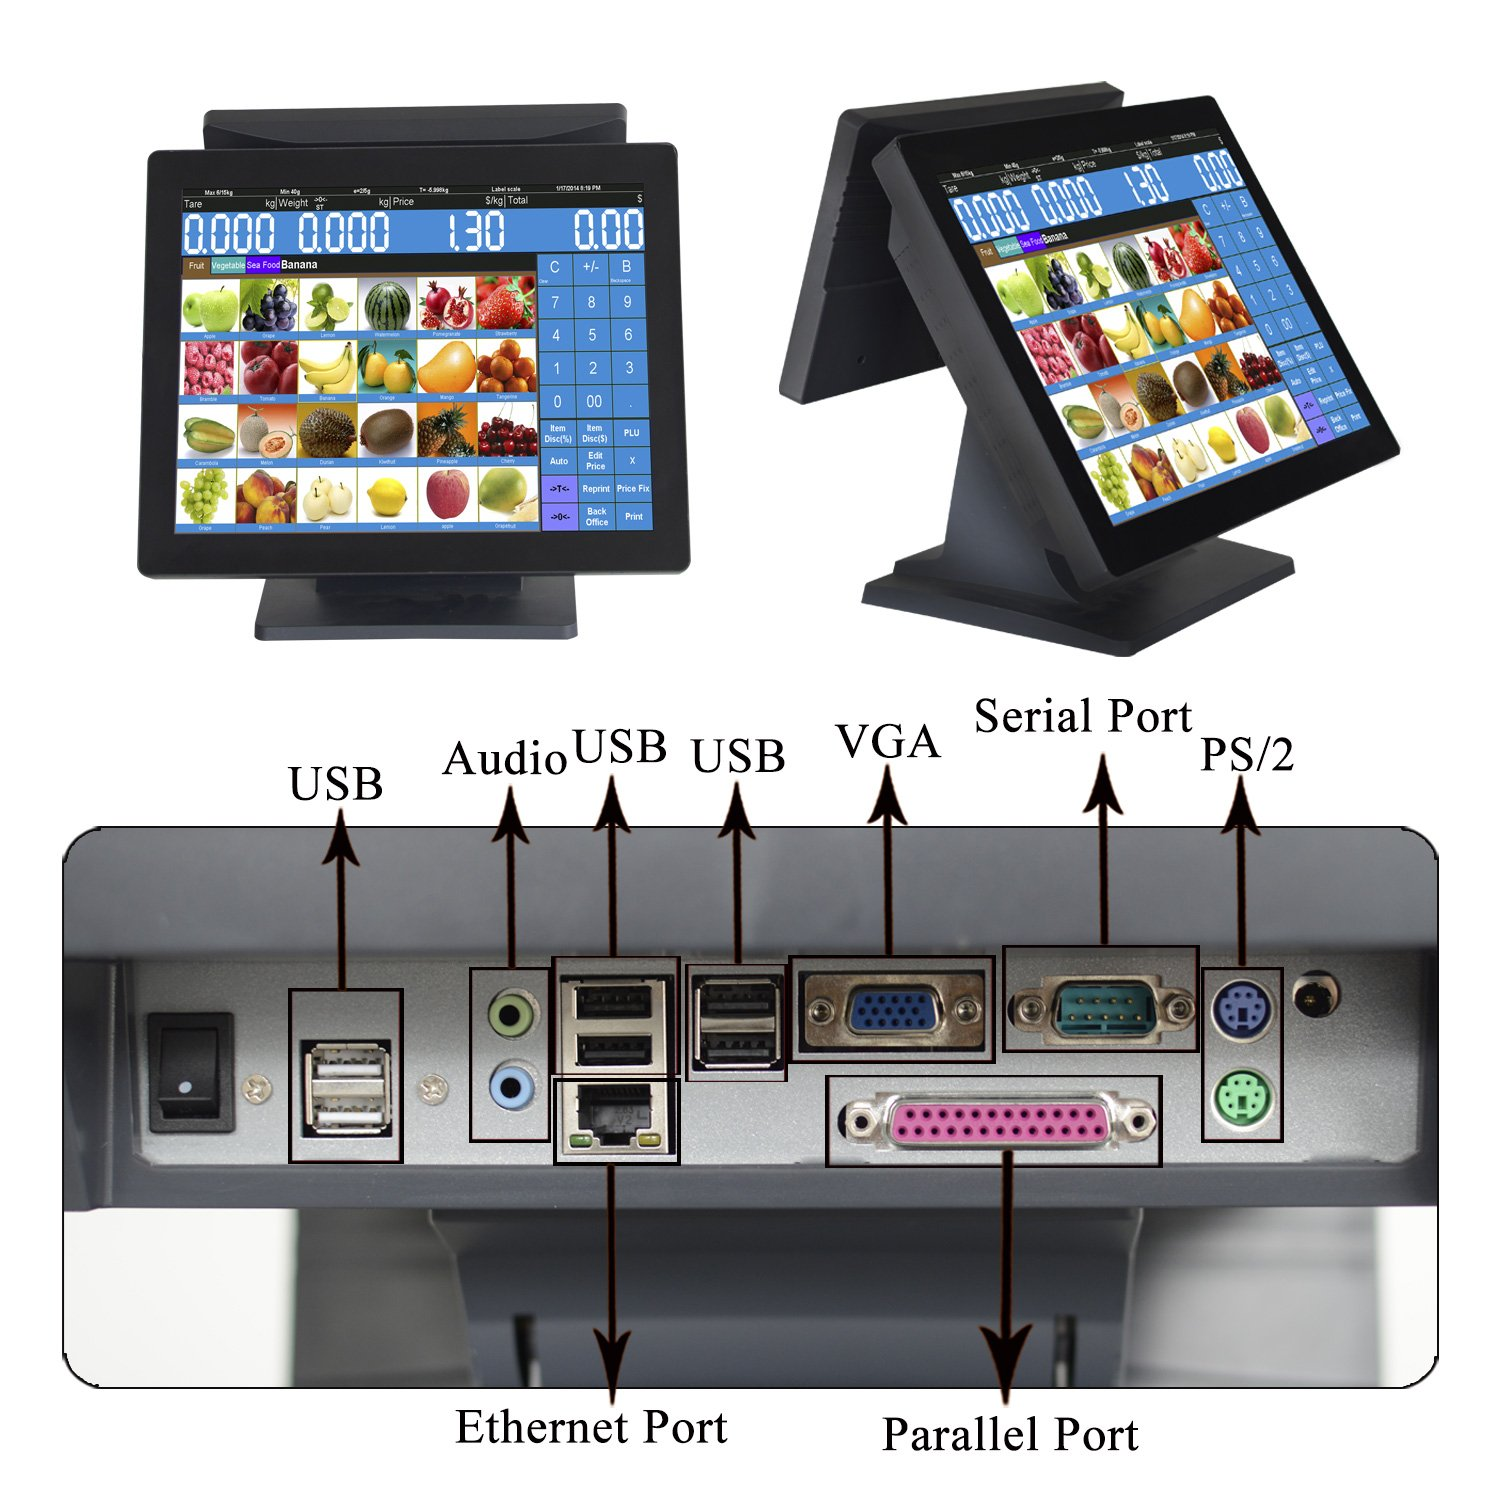 Amazon.com: ZHONGJI 15 Inch Double All in One Touch Screen Pos System/Pos Terminal/Cash Register, for Restaurant, Coffee Shop, Bubble Tea Shop, Bakery …